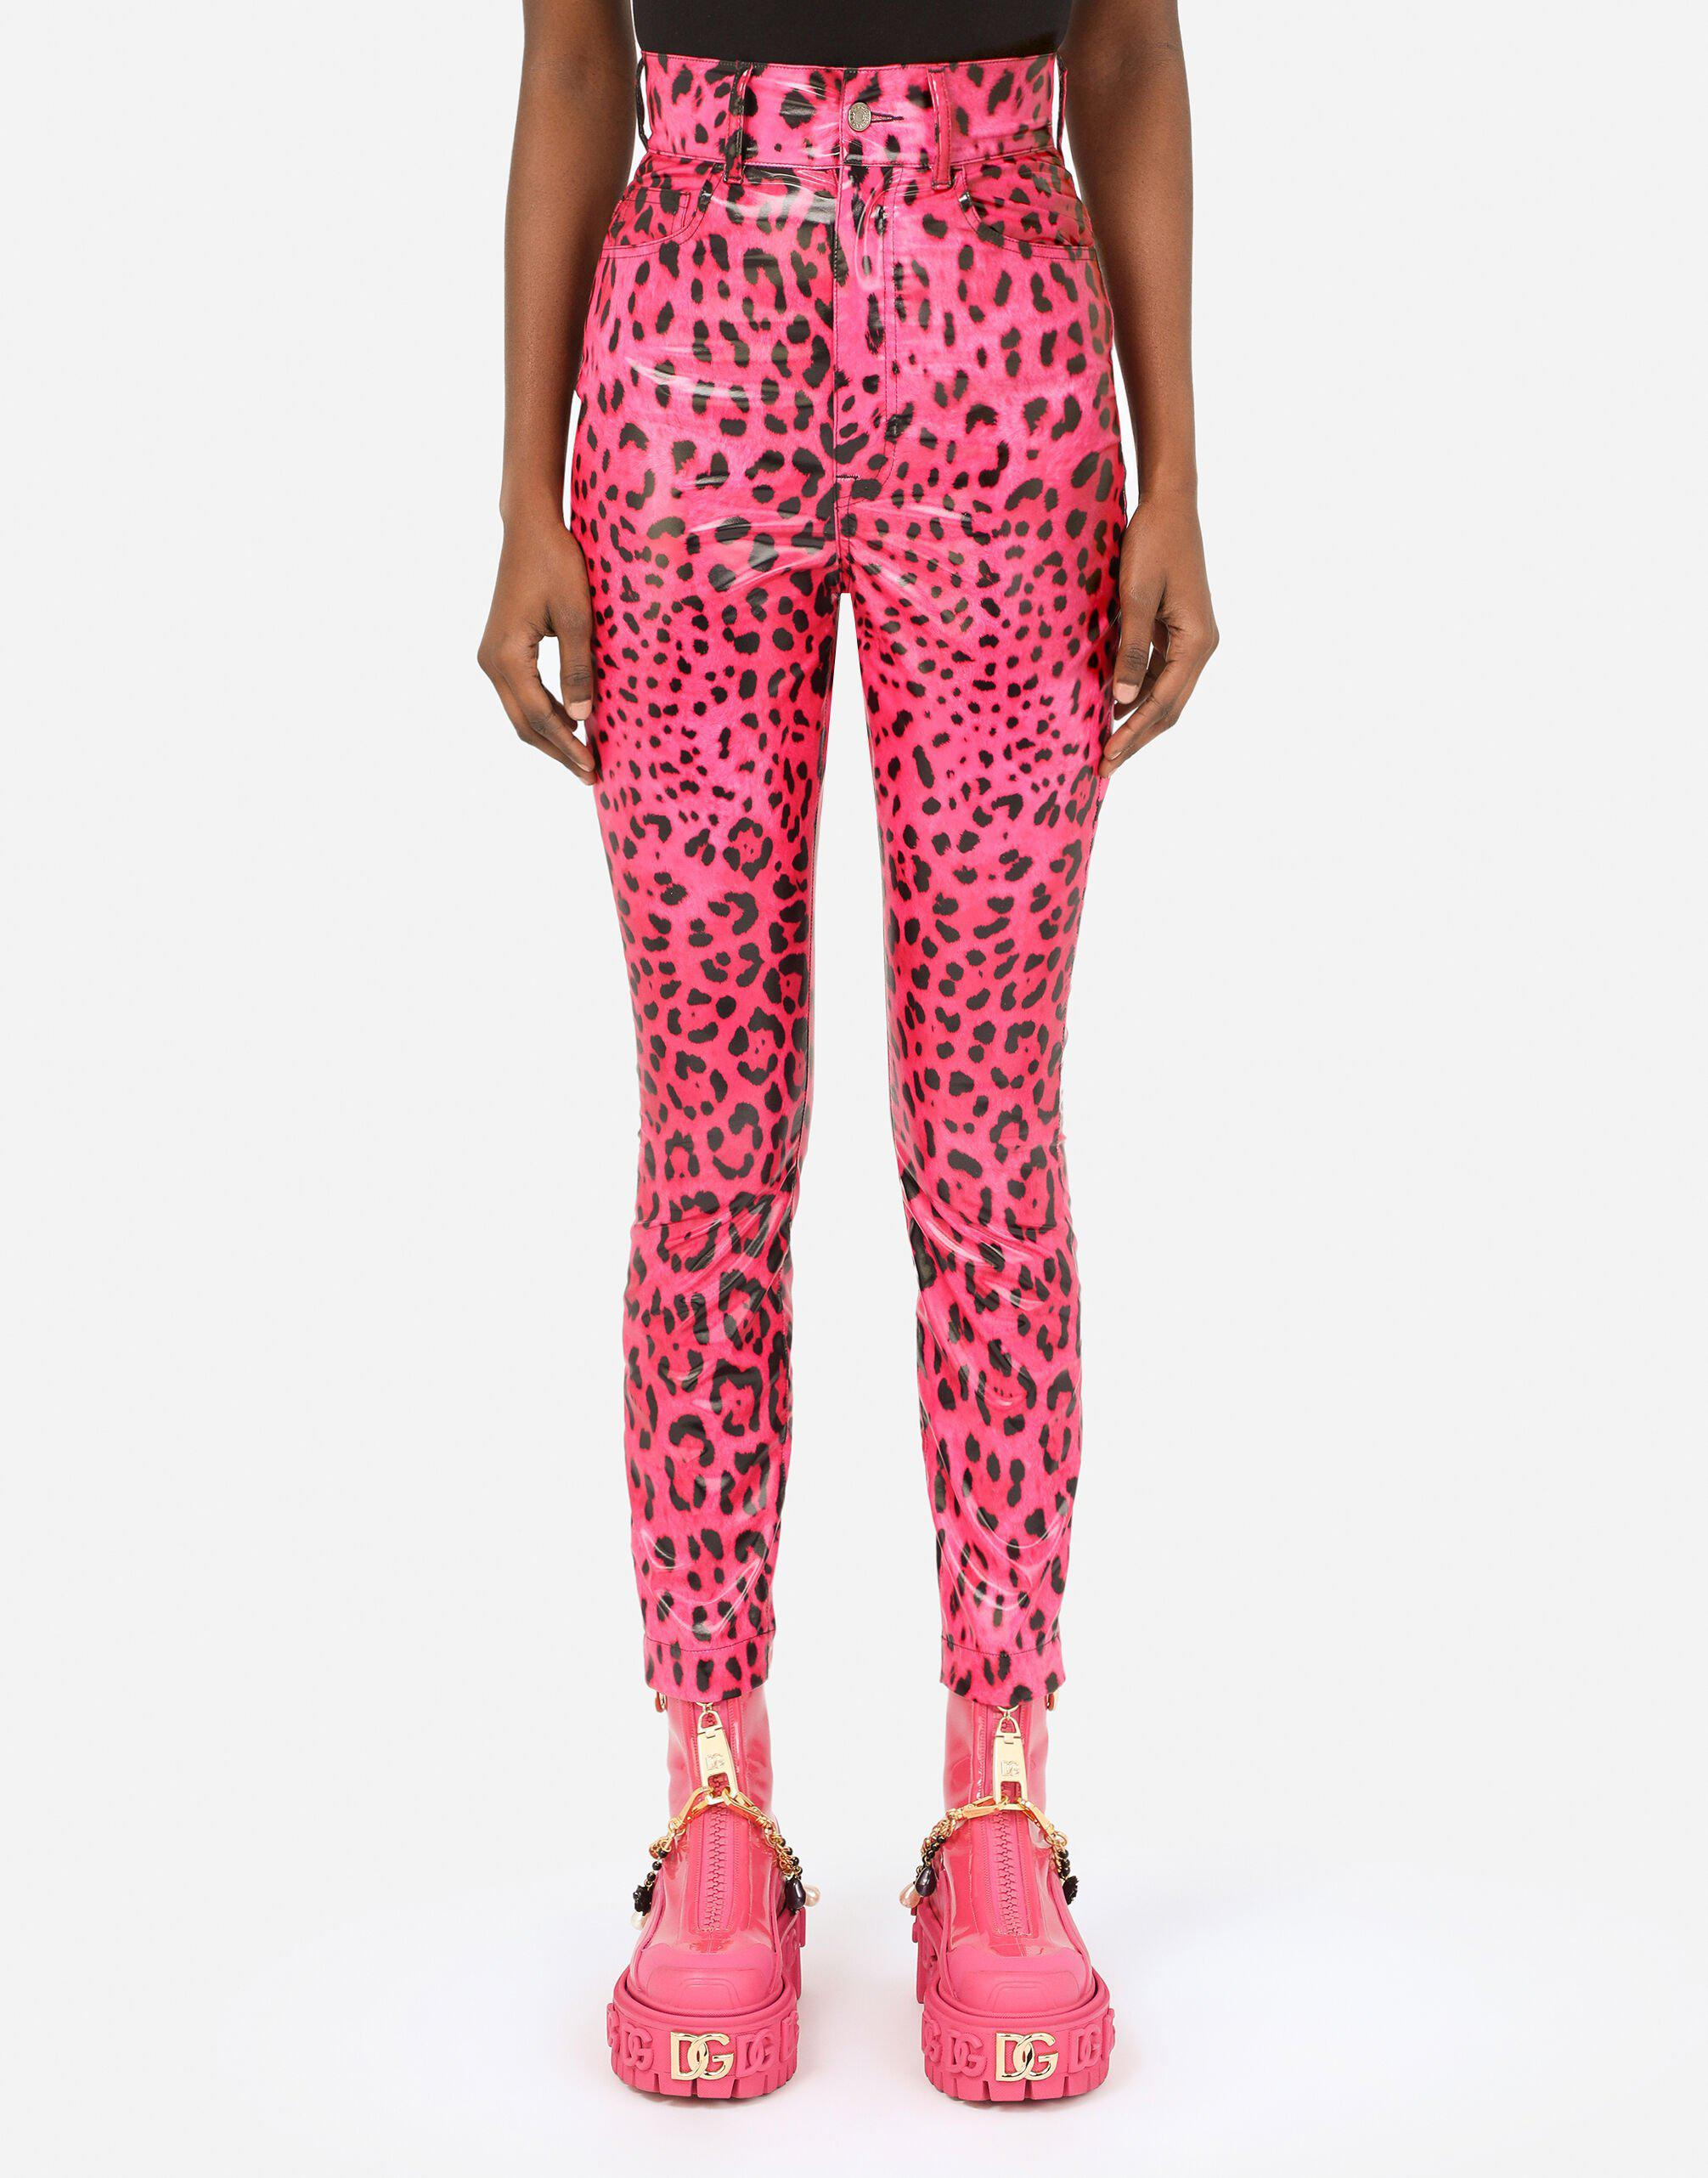 Foiled nylon jeans with neon leopard print